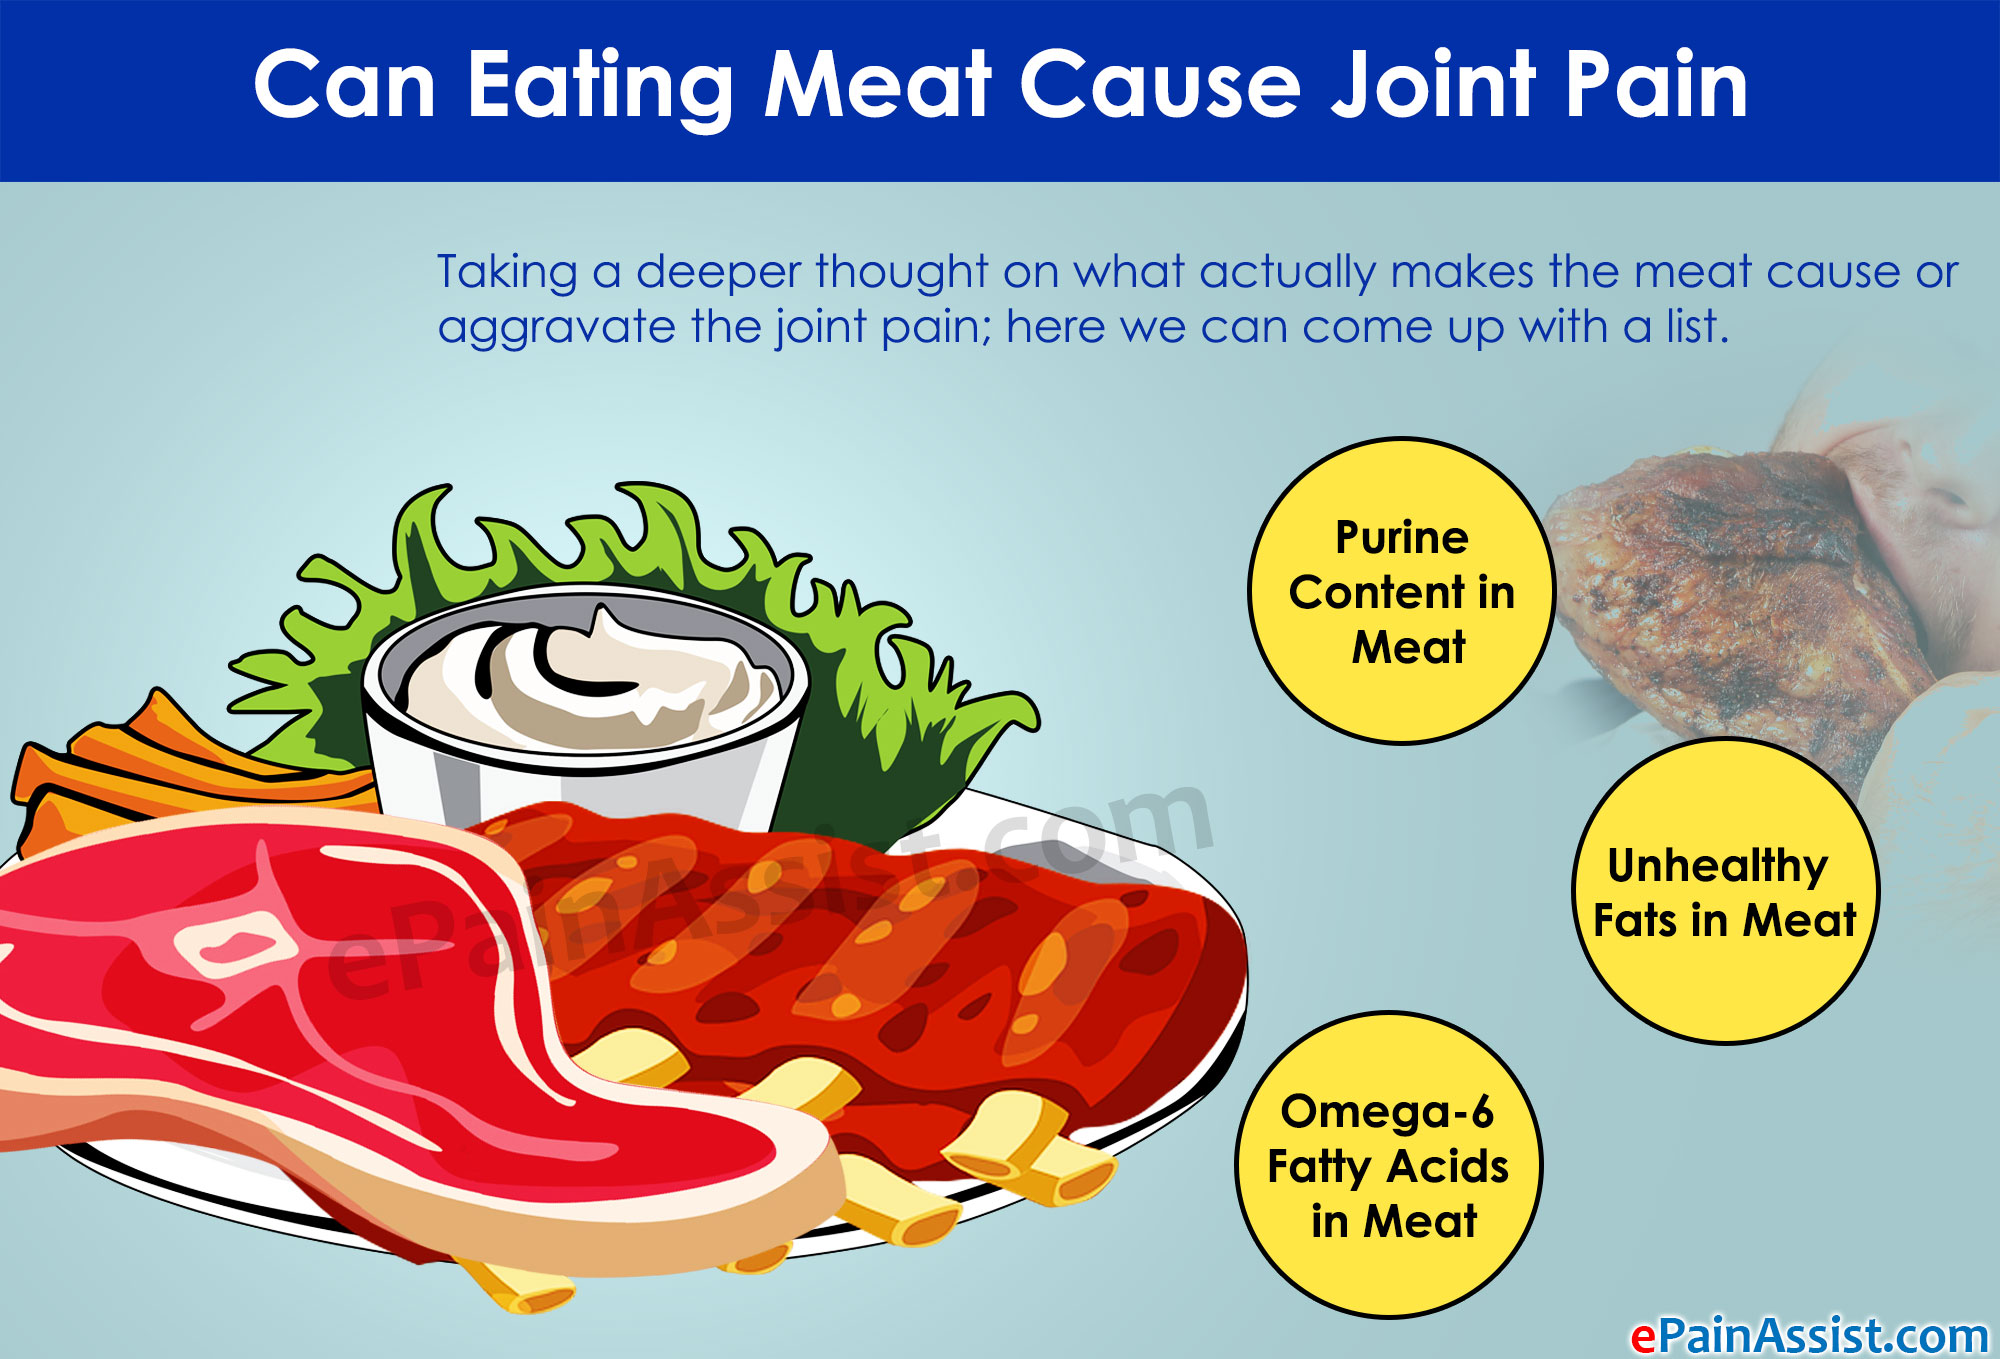 Can Eating Meat Cause Joint Pain